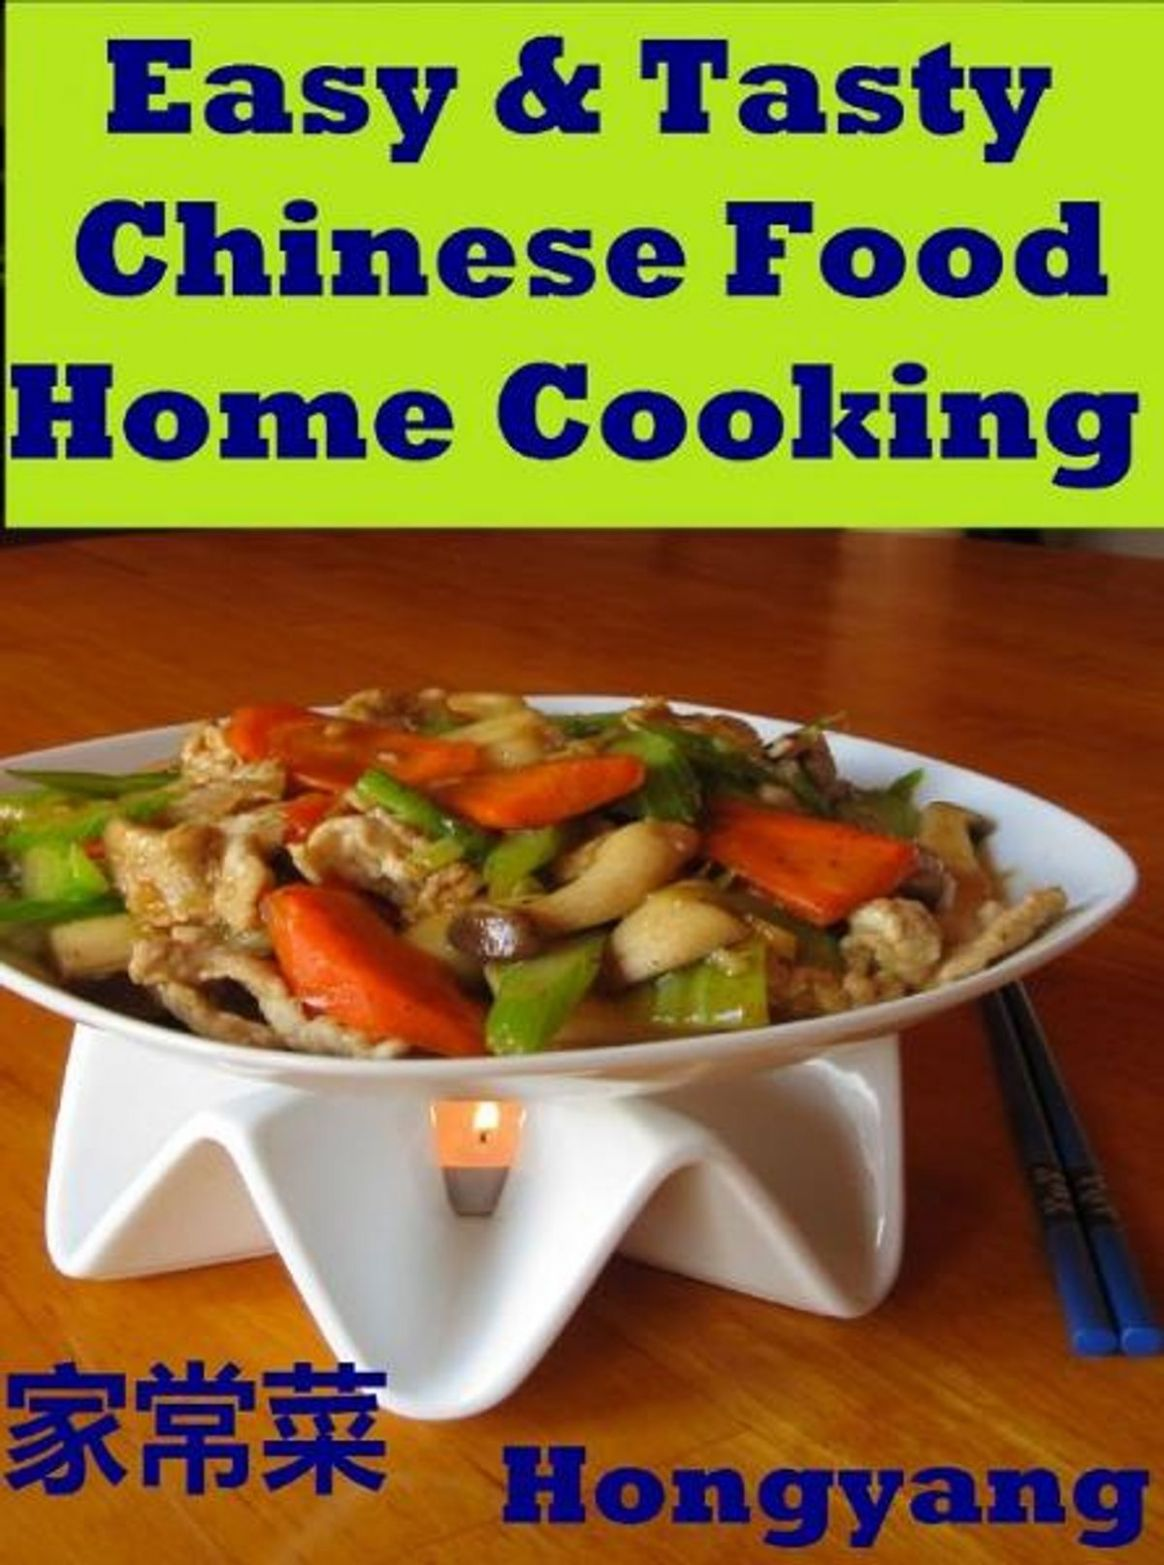 Easy & Tasty Chinese Food Home Cooking: 10 Recipes with Photos ebook by  Hongyang(Canada)/ 红洋(加拿大) - Rakuten Kobo - Recipes Home Cooking